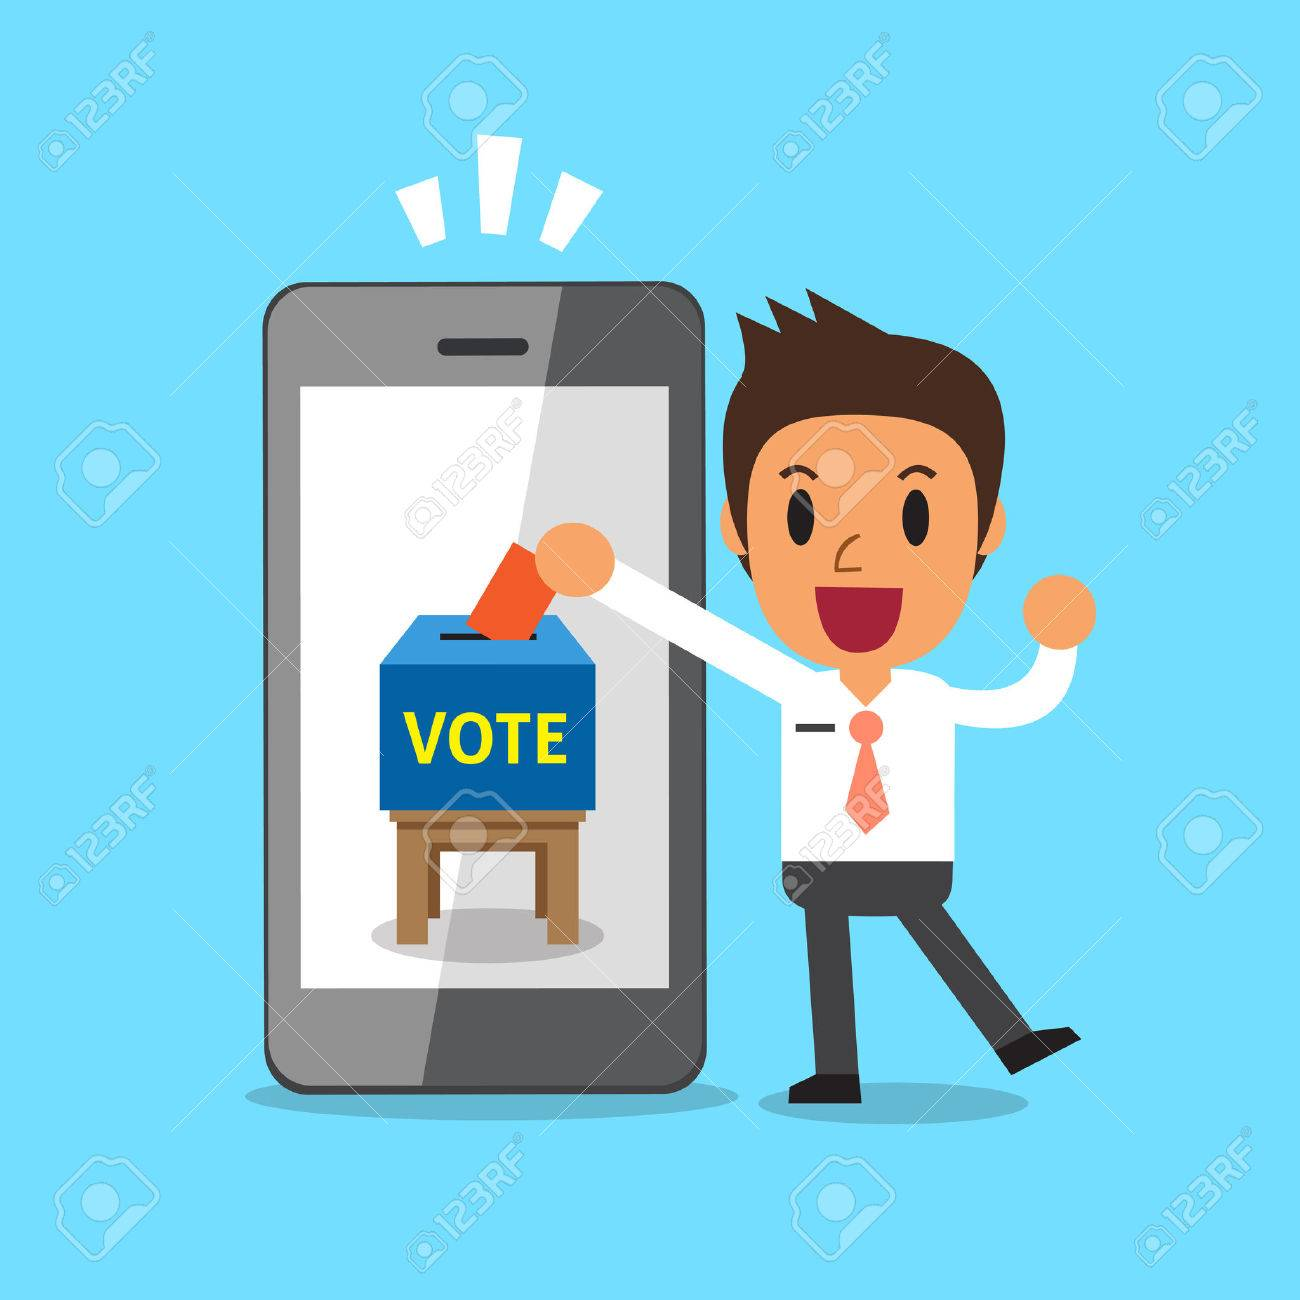 Businessman putting voting paper in smartphone - 62598857